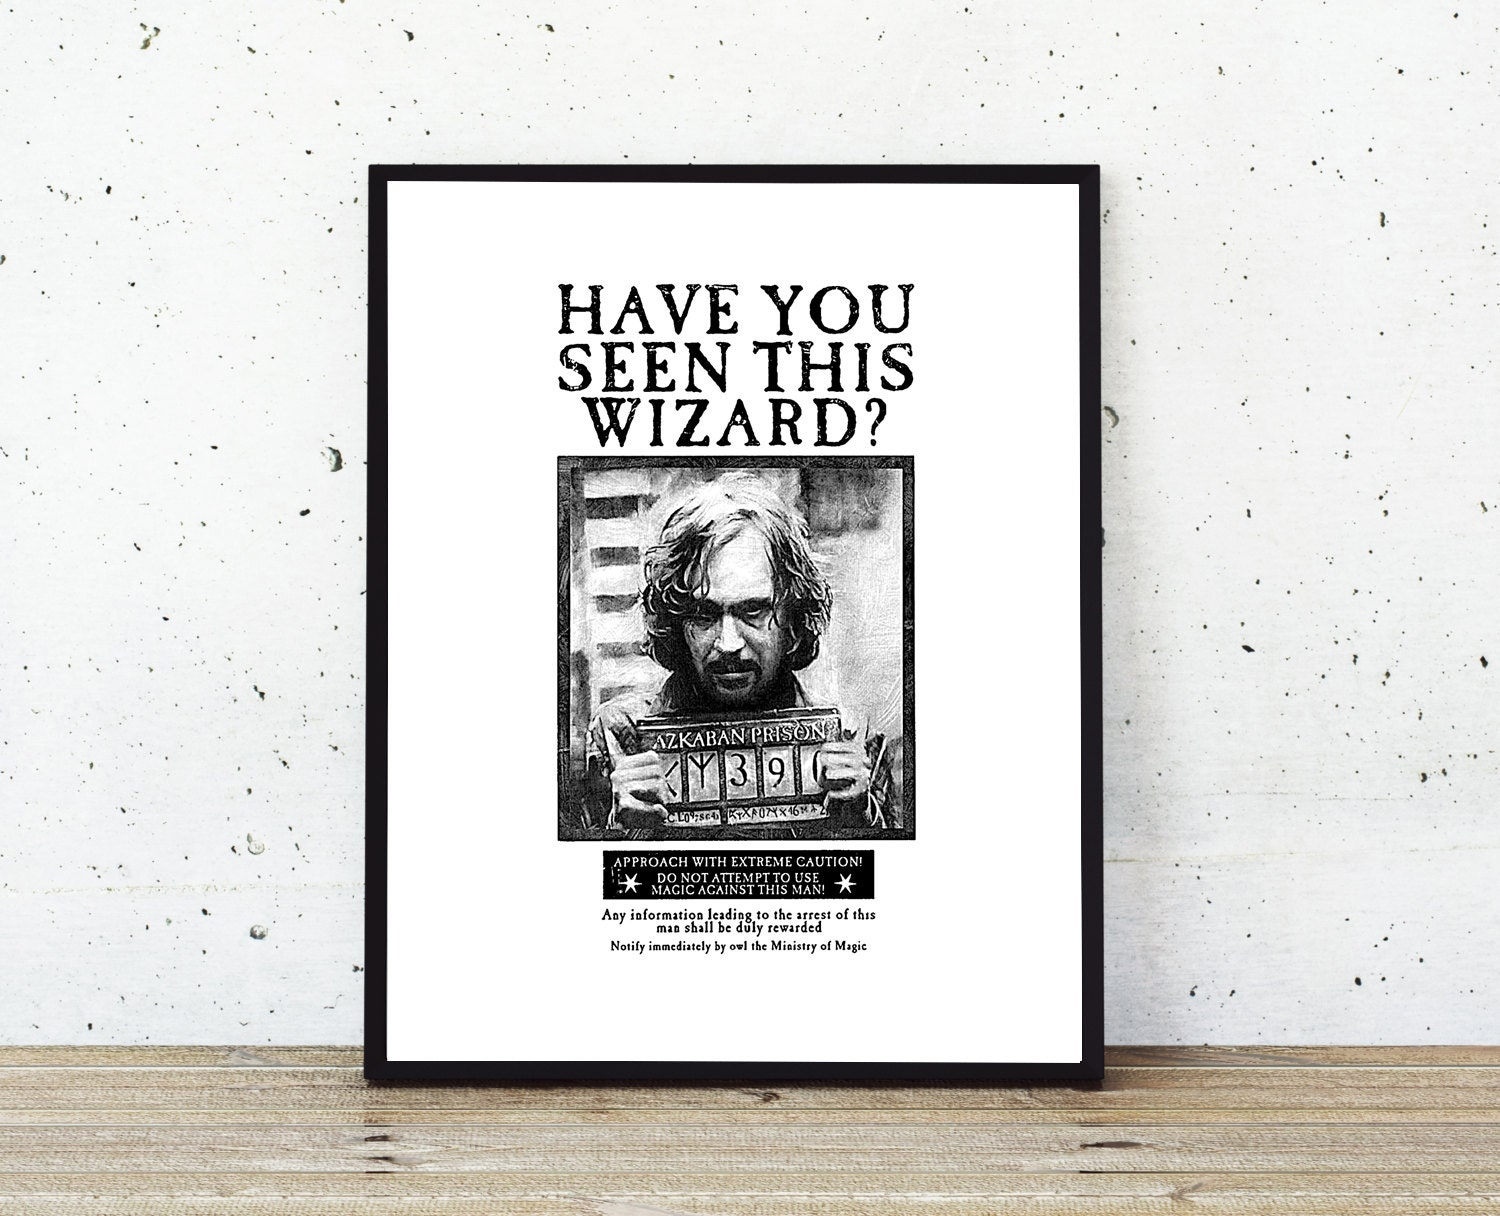 picture about Have You Seen This Wizard Printable called Contain Oneself Recognized This Wizard Printable 92185 LINEBLOG